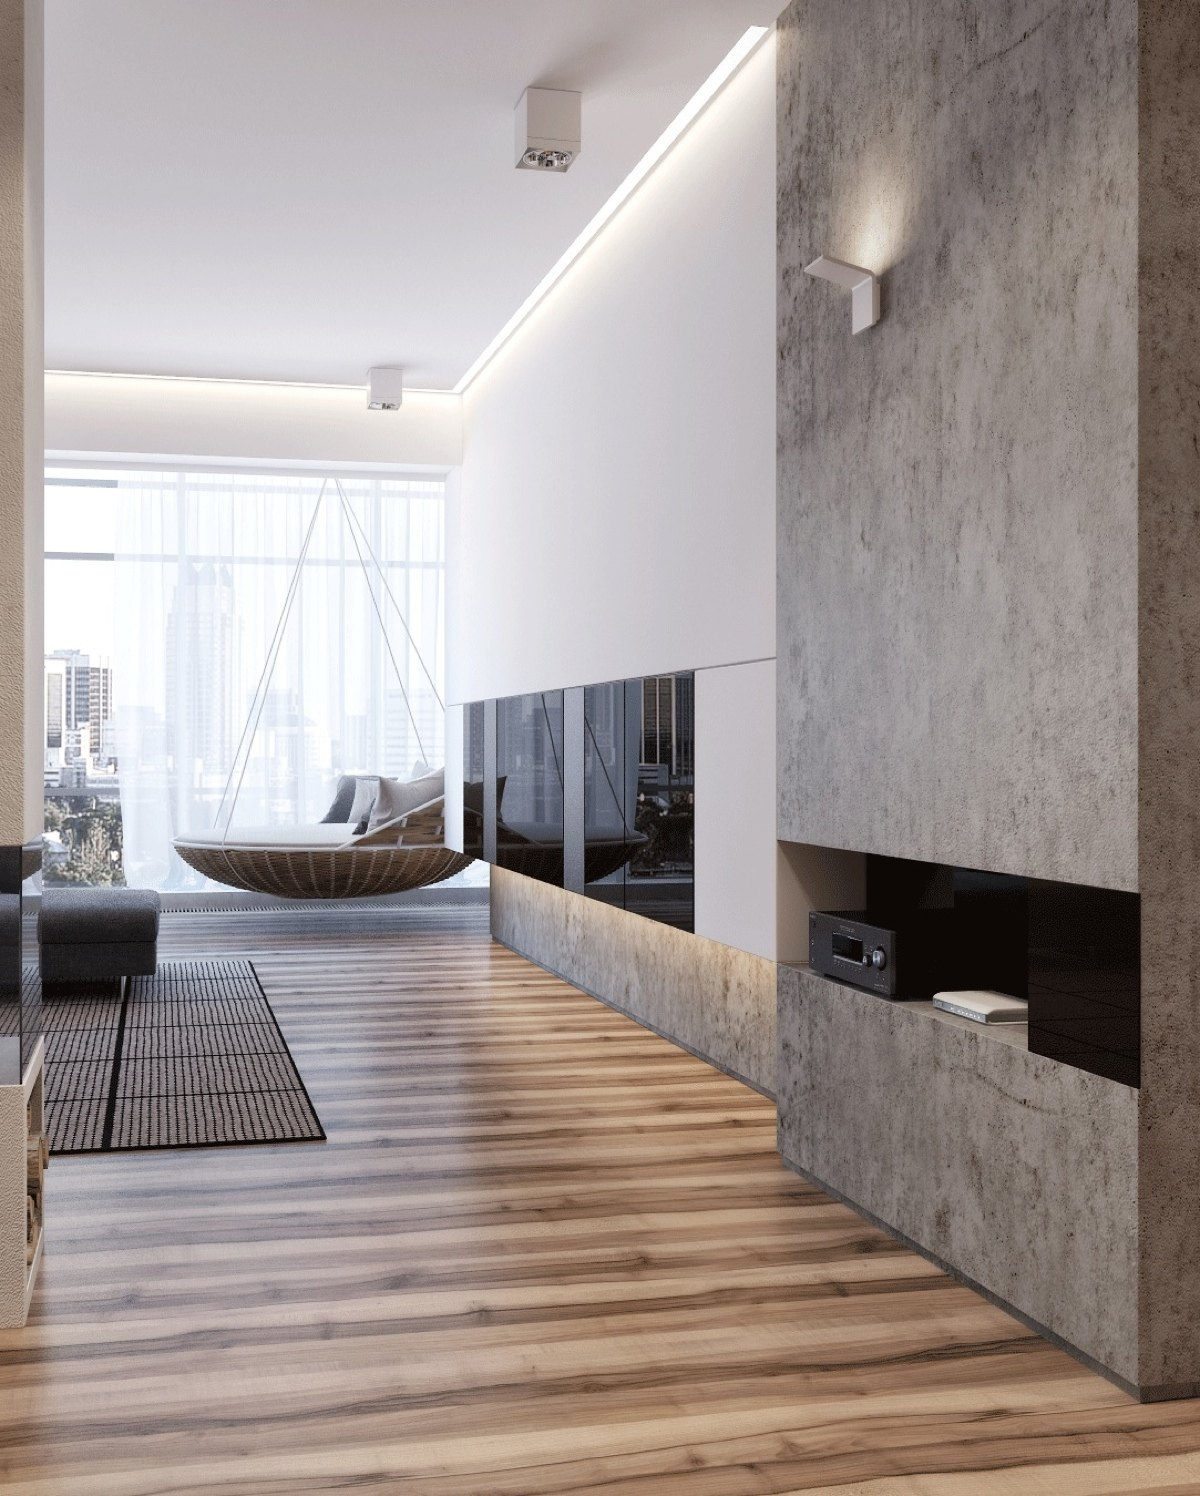 Grayscale And Wood Apartment - Two apartments with sleek grayscale interiors